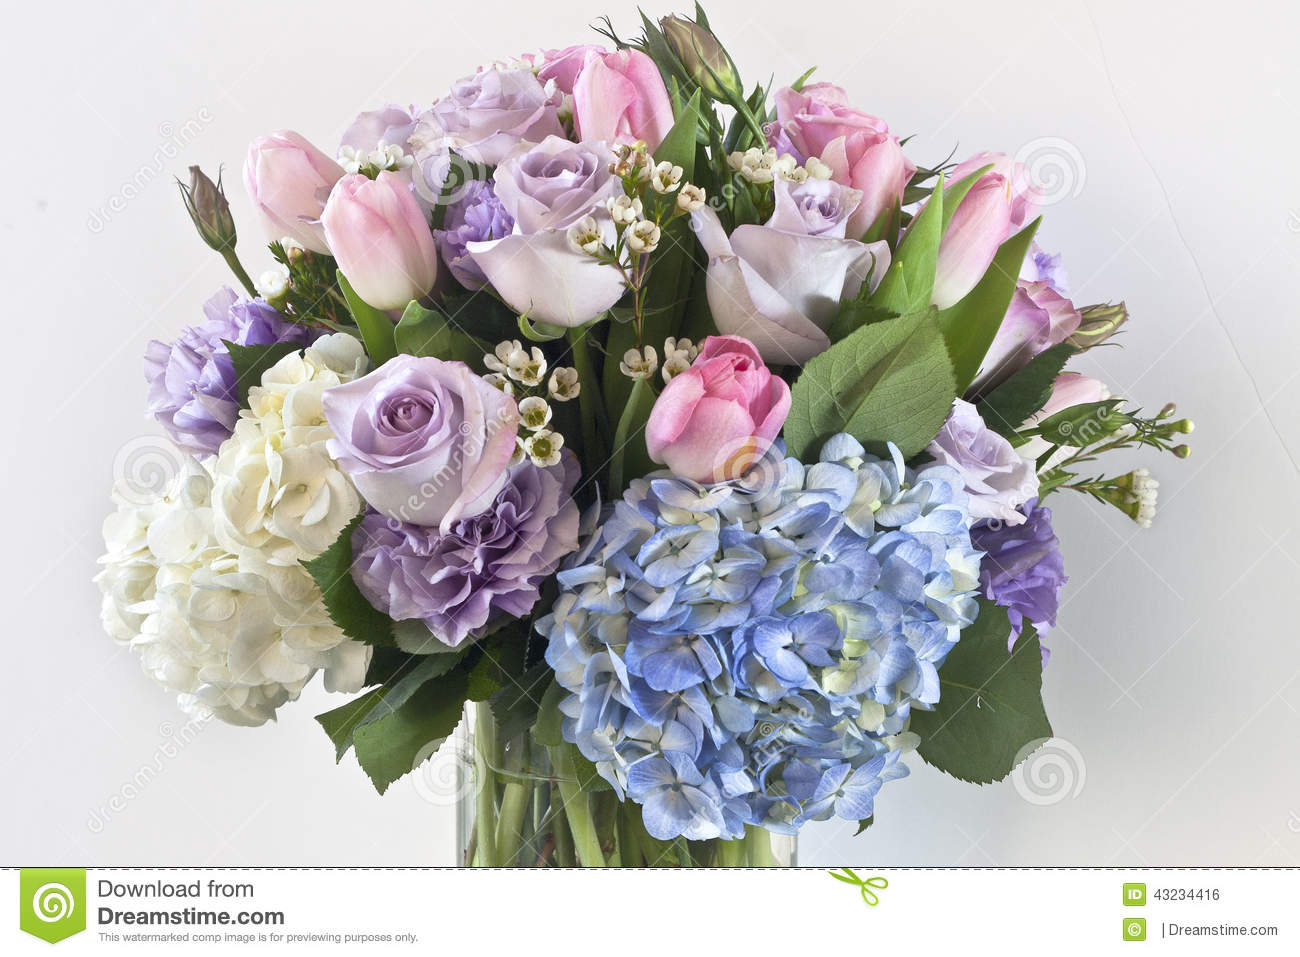 Online Bouquet Delivery In Ghaziabad Stock Photo Image Of Make